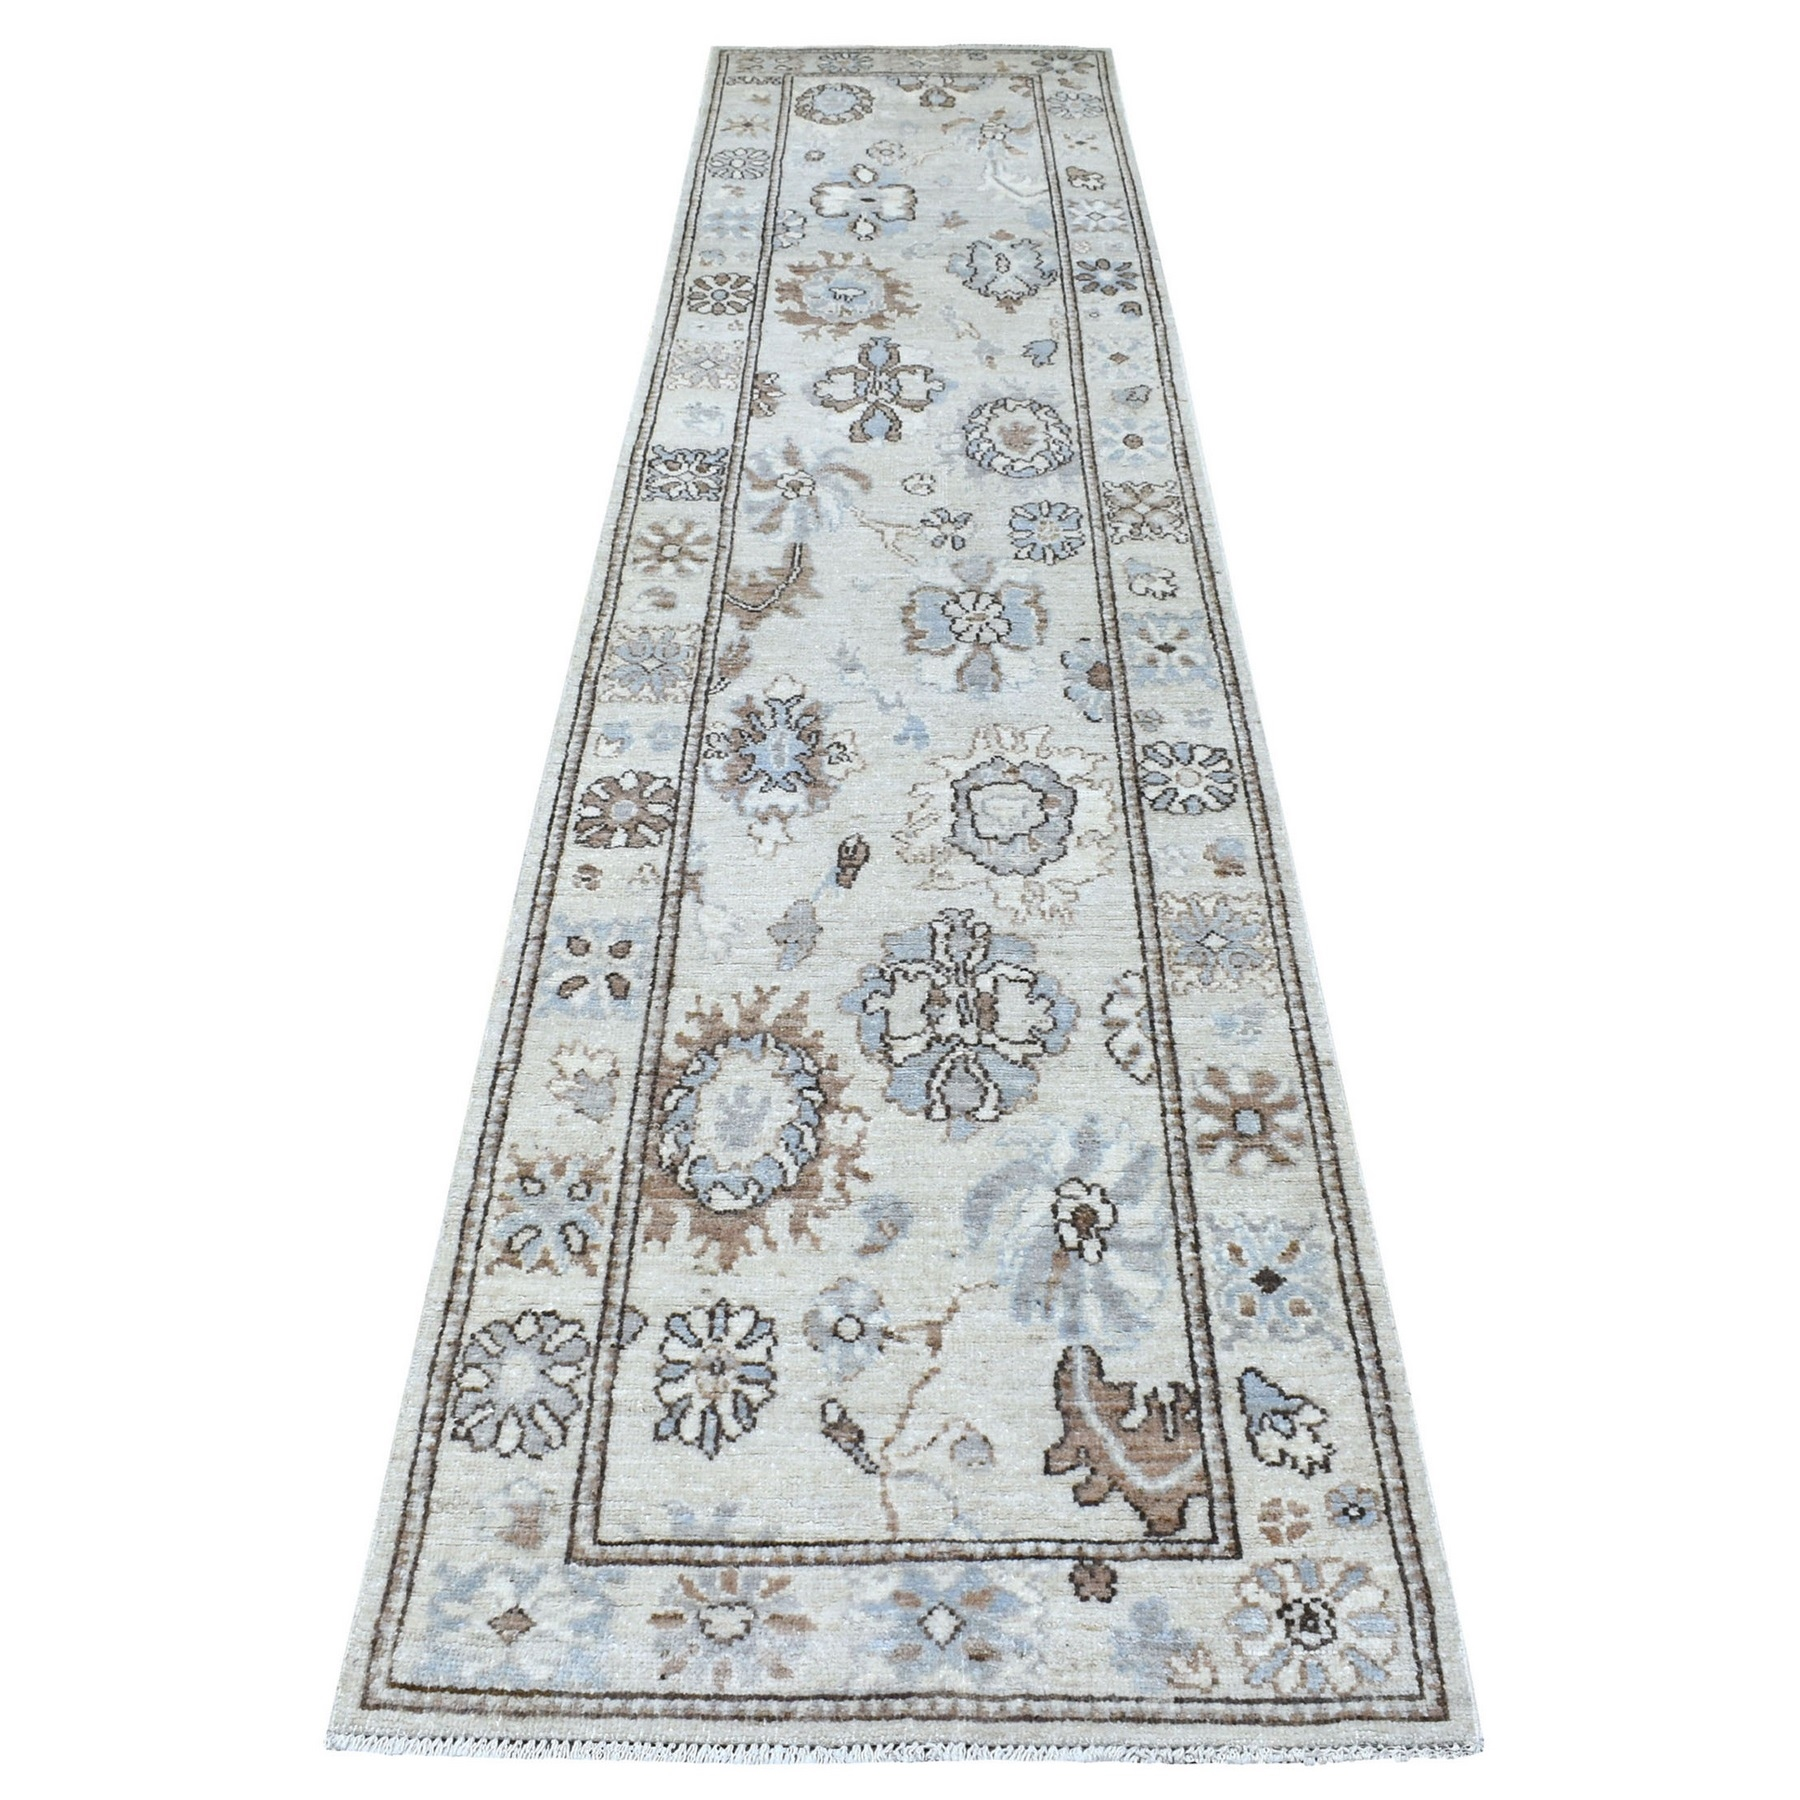 Oushak And Peshawar Rugs LUV606312